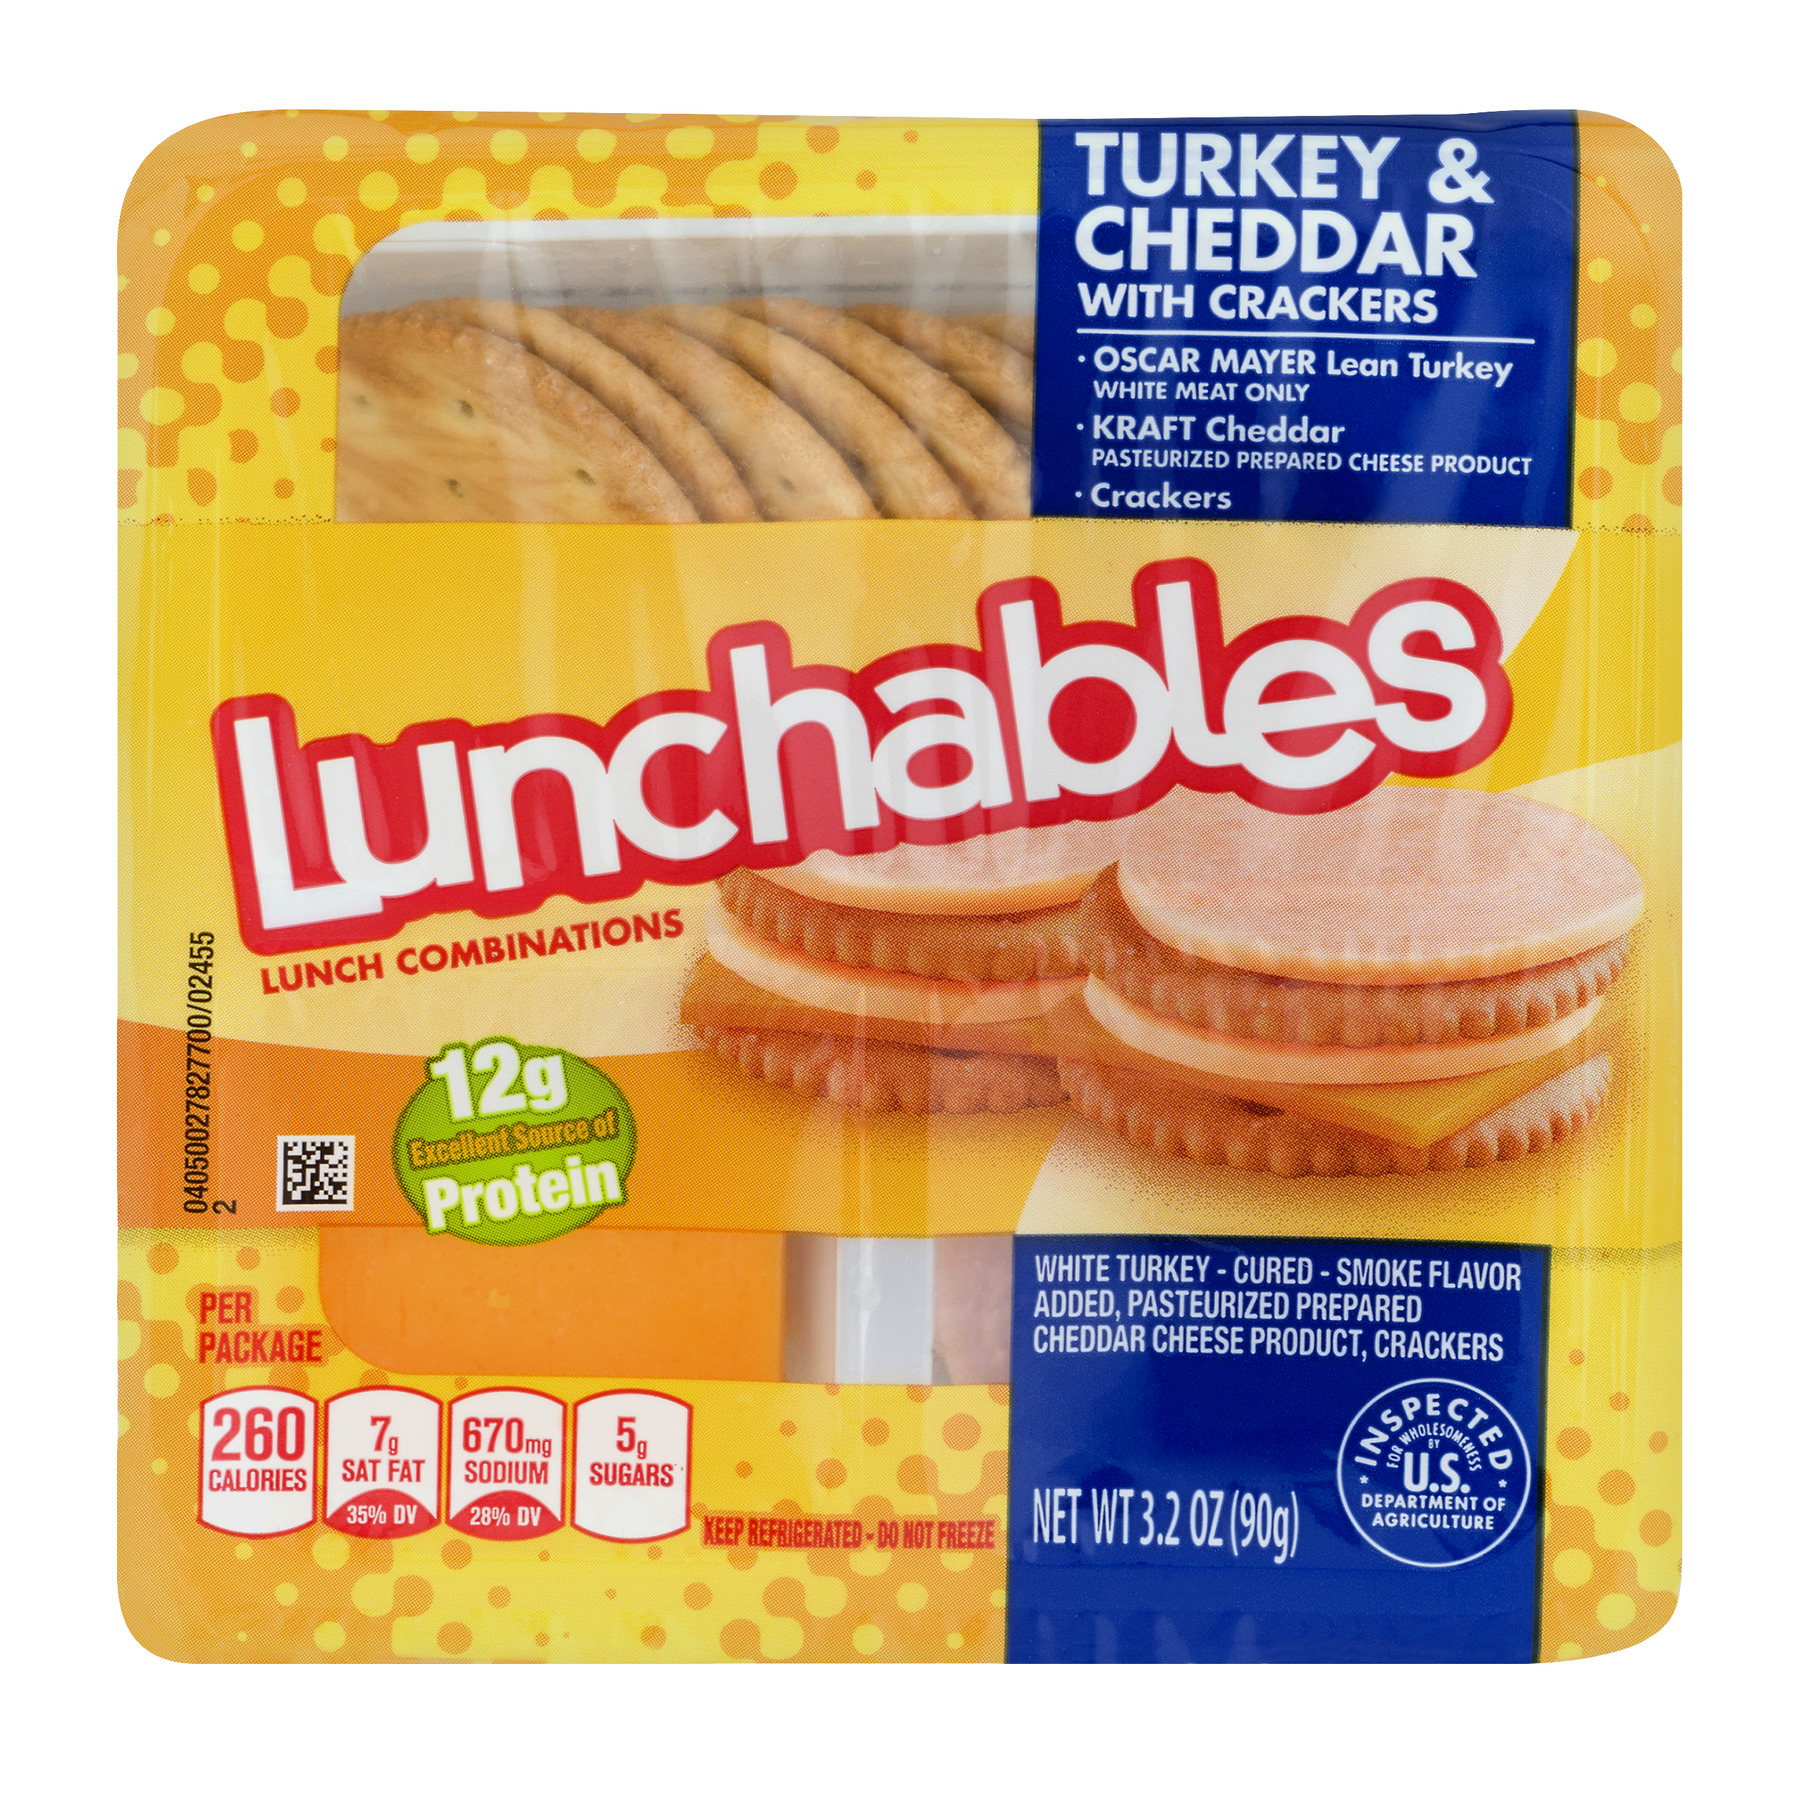 Lunchables Turkey & Cheddar Cheese with Crackers Lunchables, 4.50 oz